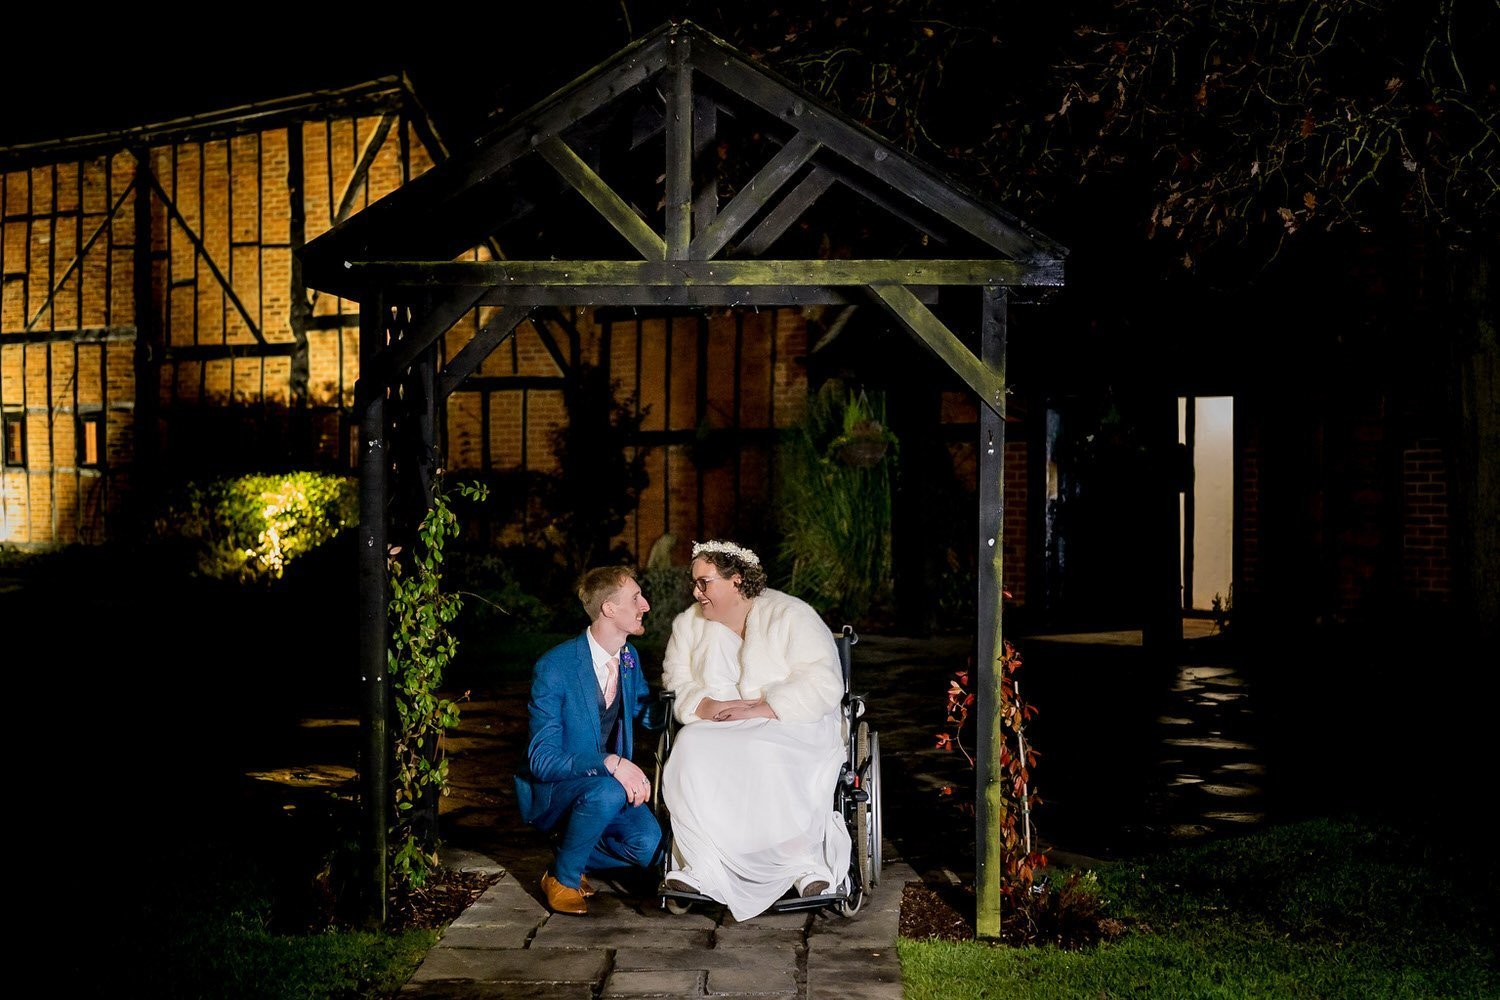 The Barns Hotel Bedford Wooten Weddings Photography Bride and groom during night photos under the wooden archway